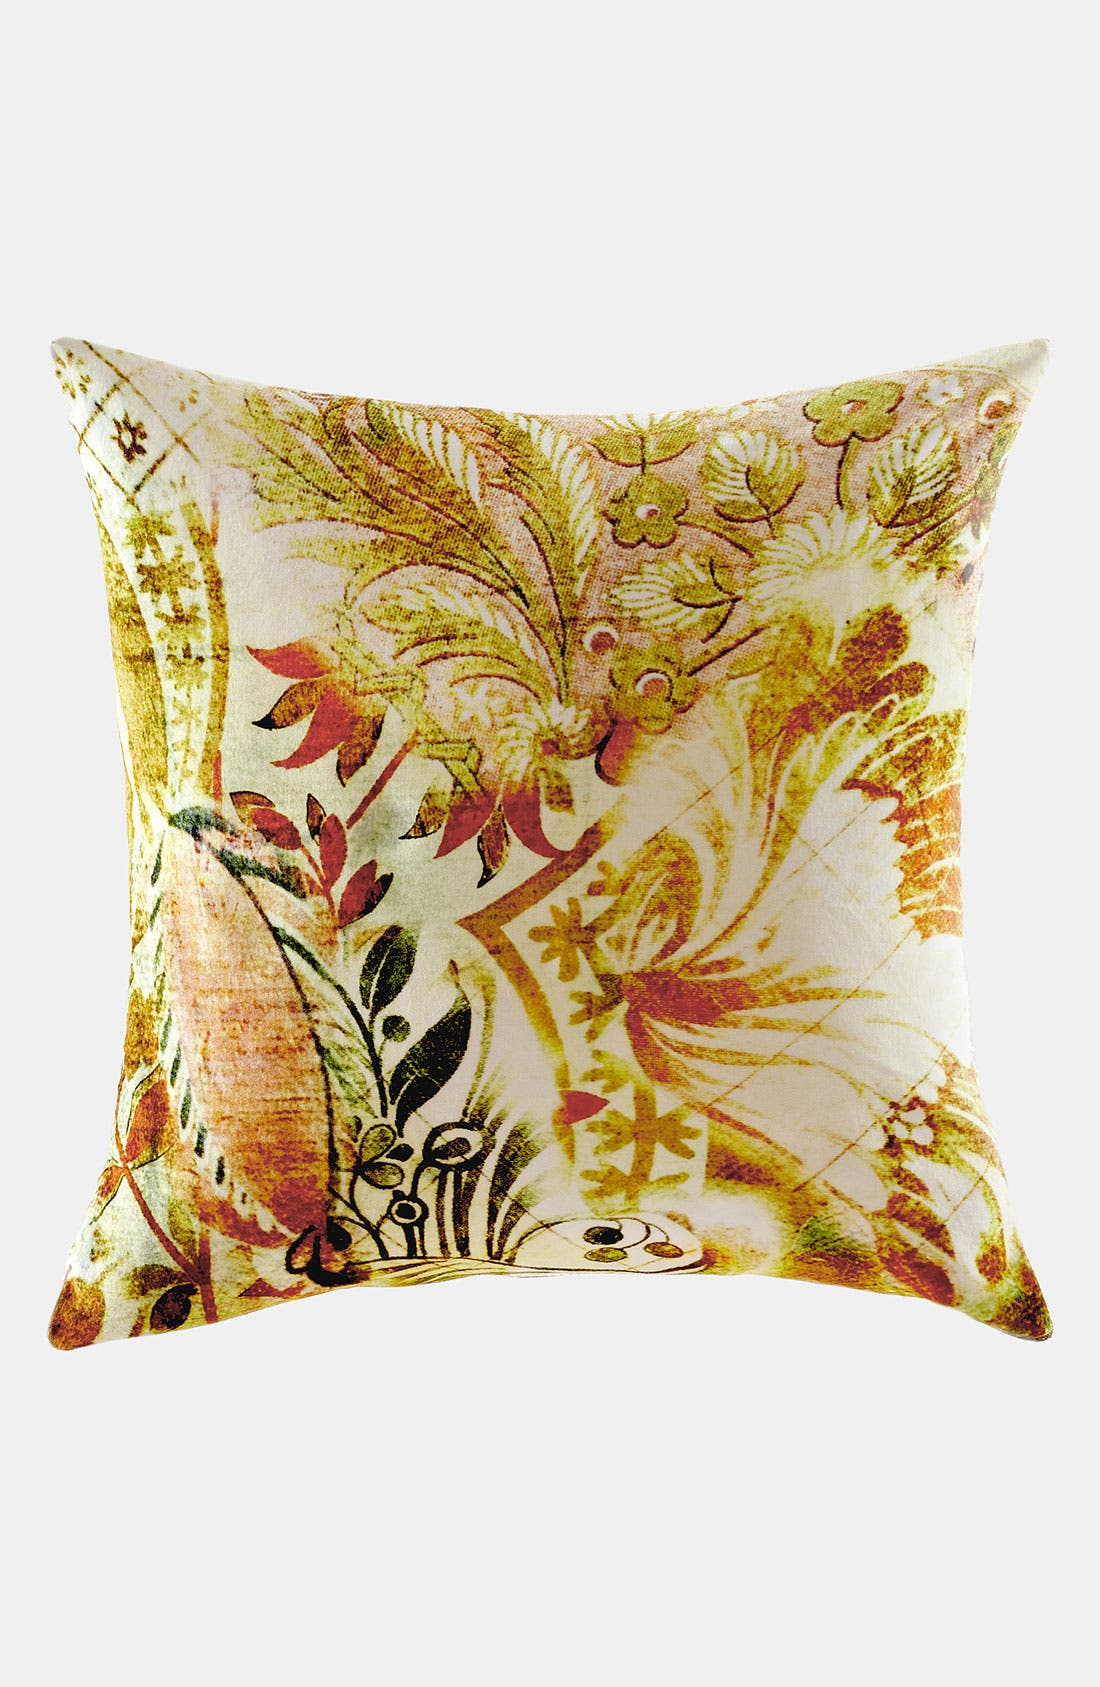 Alternate Image 1 Selected - Tracy Porter® For Poetic Wanderlust® 'Poetic Wanderlust' Velvet Pillow